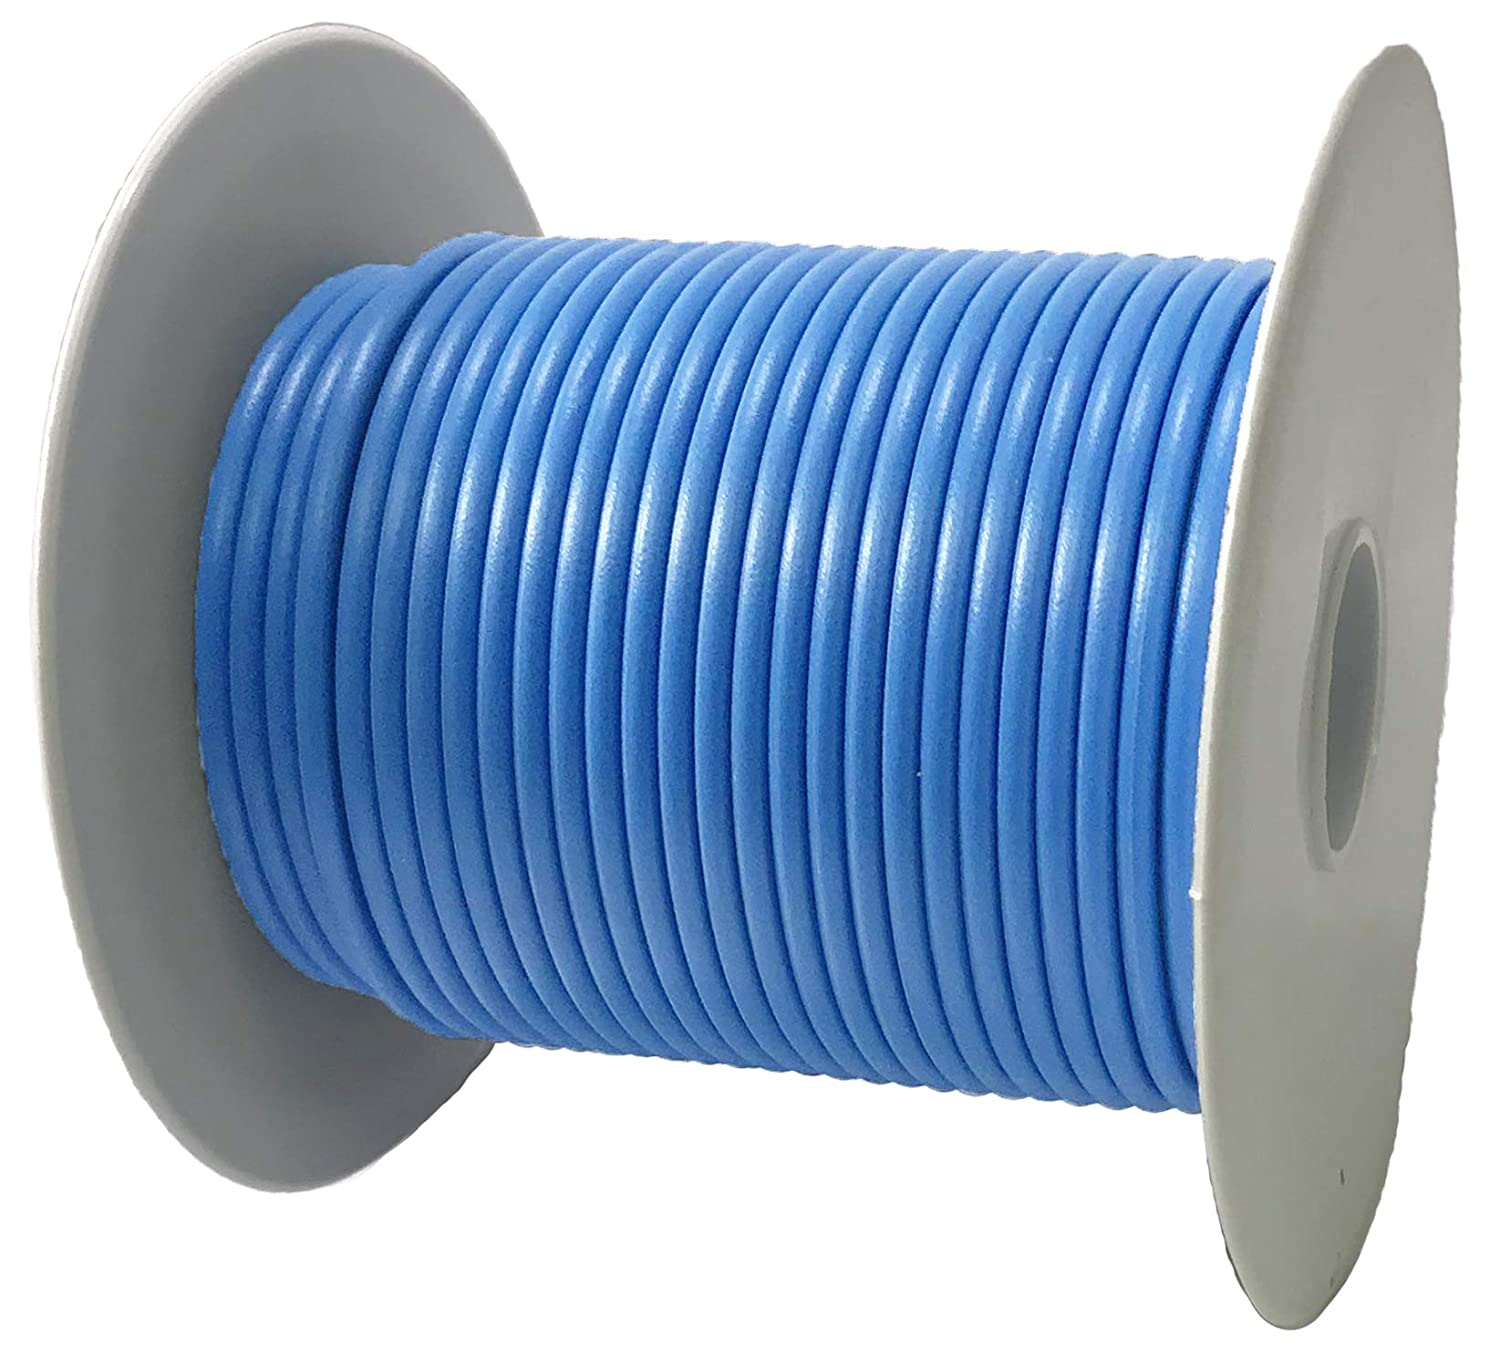 14 Gauge Max 41% OFF Light Max 82% OFF Blue Marine Tinned 500 - FT Wire Copper Primary